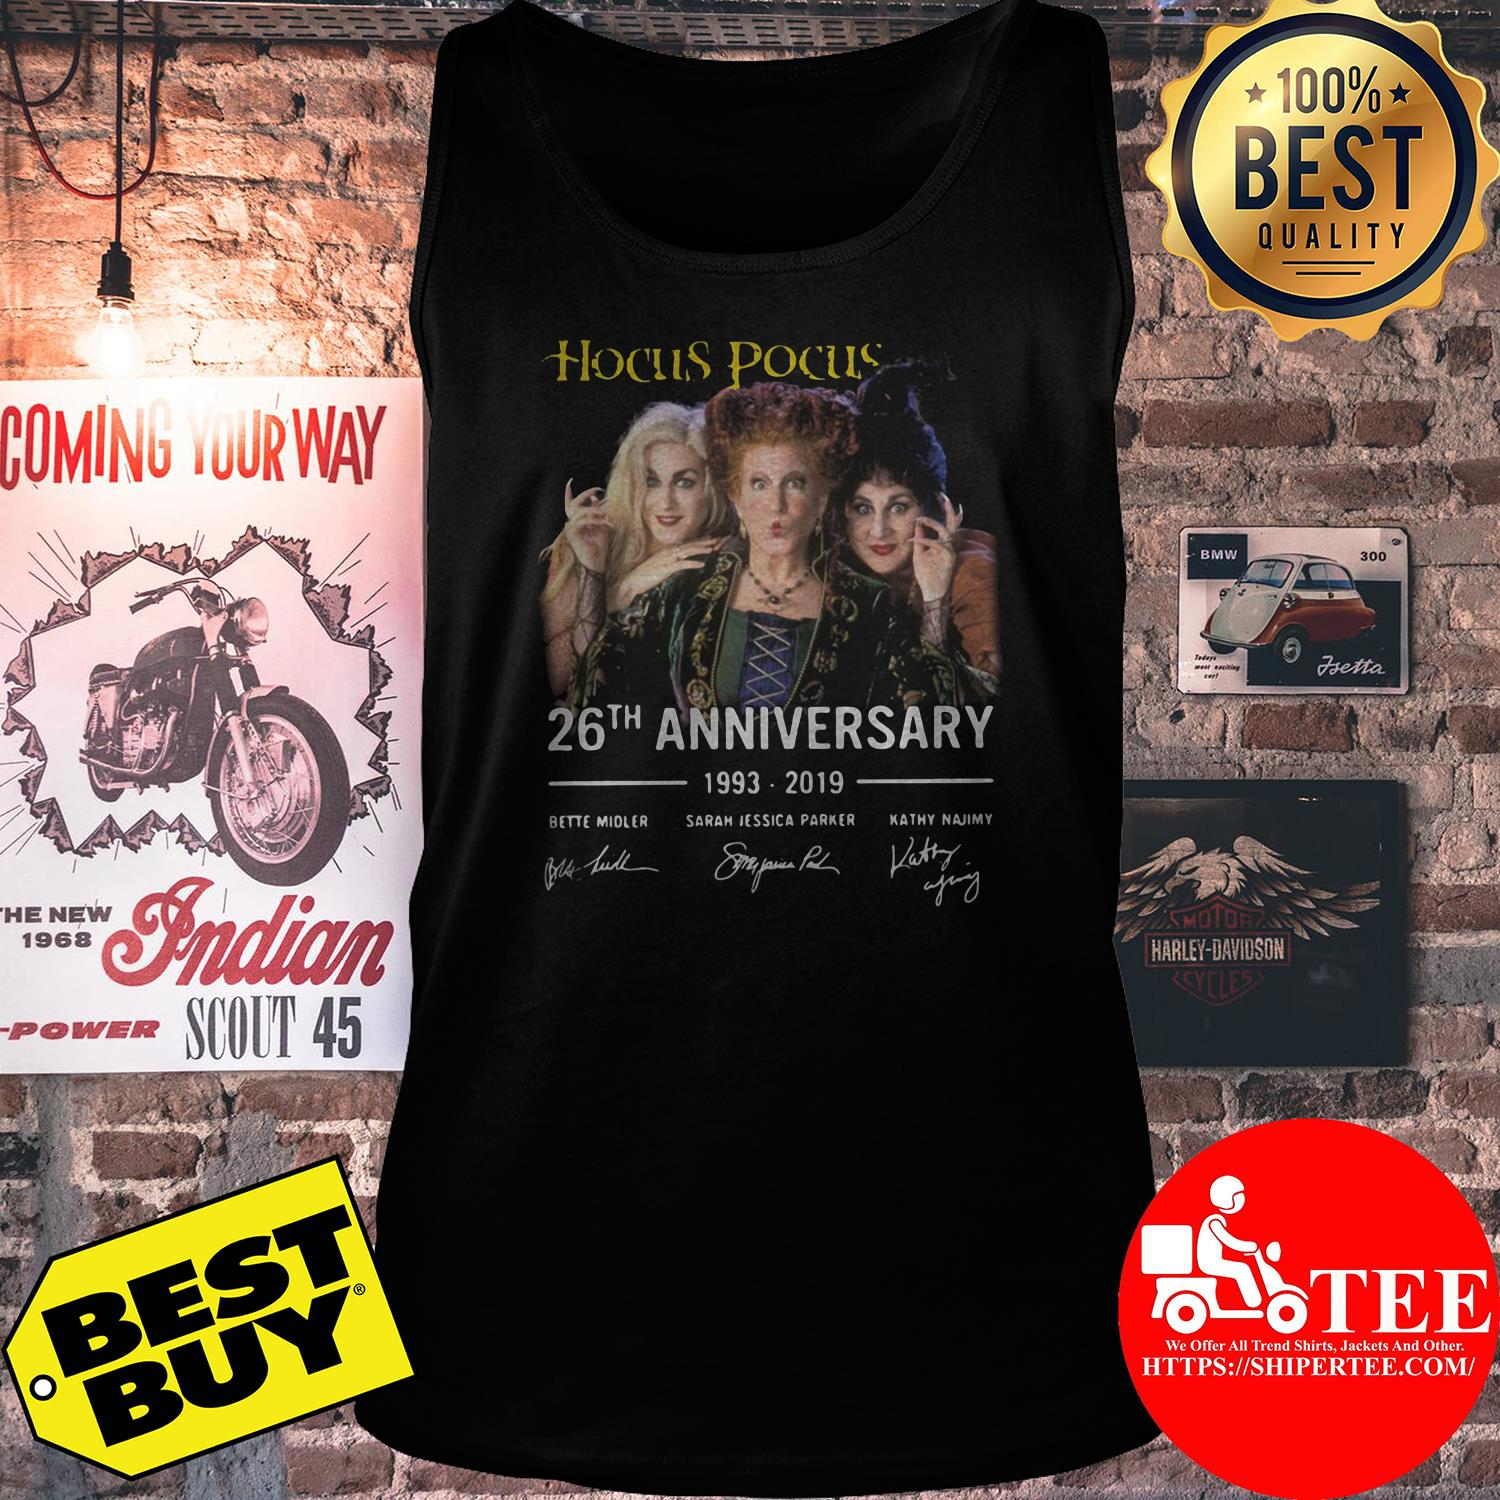 Hocus Pocus 26th anniversary 1993-2019 tank top